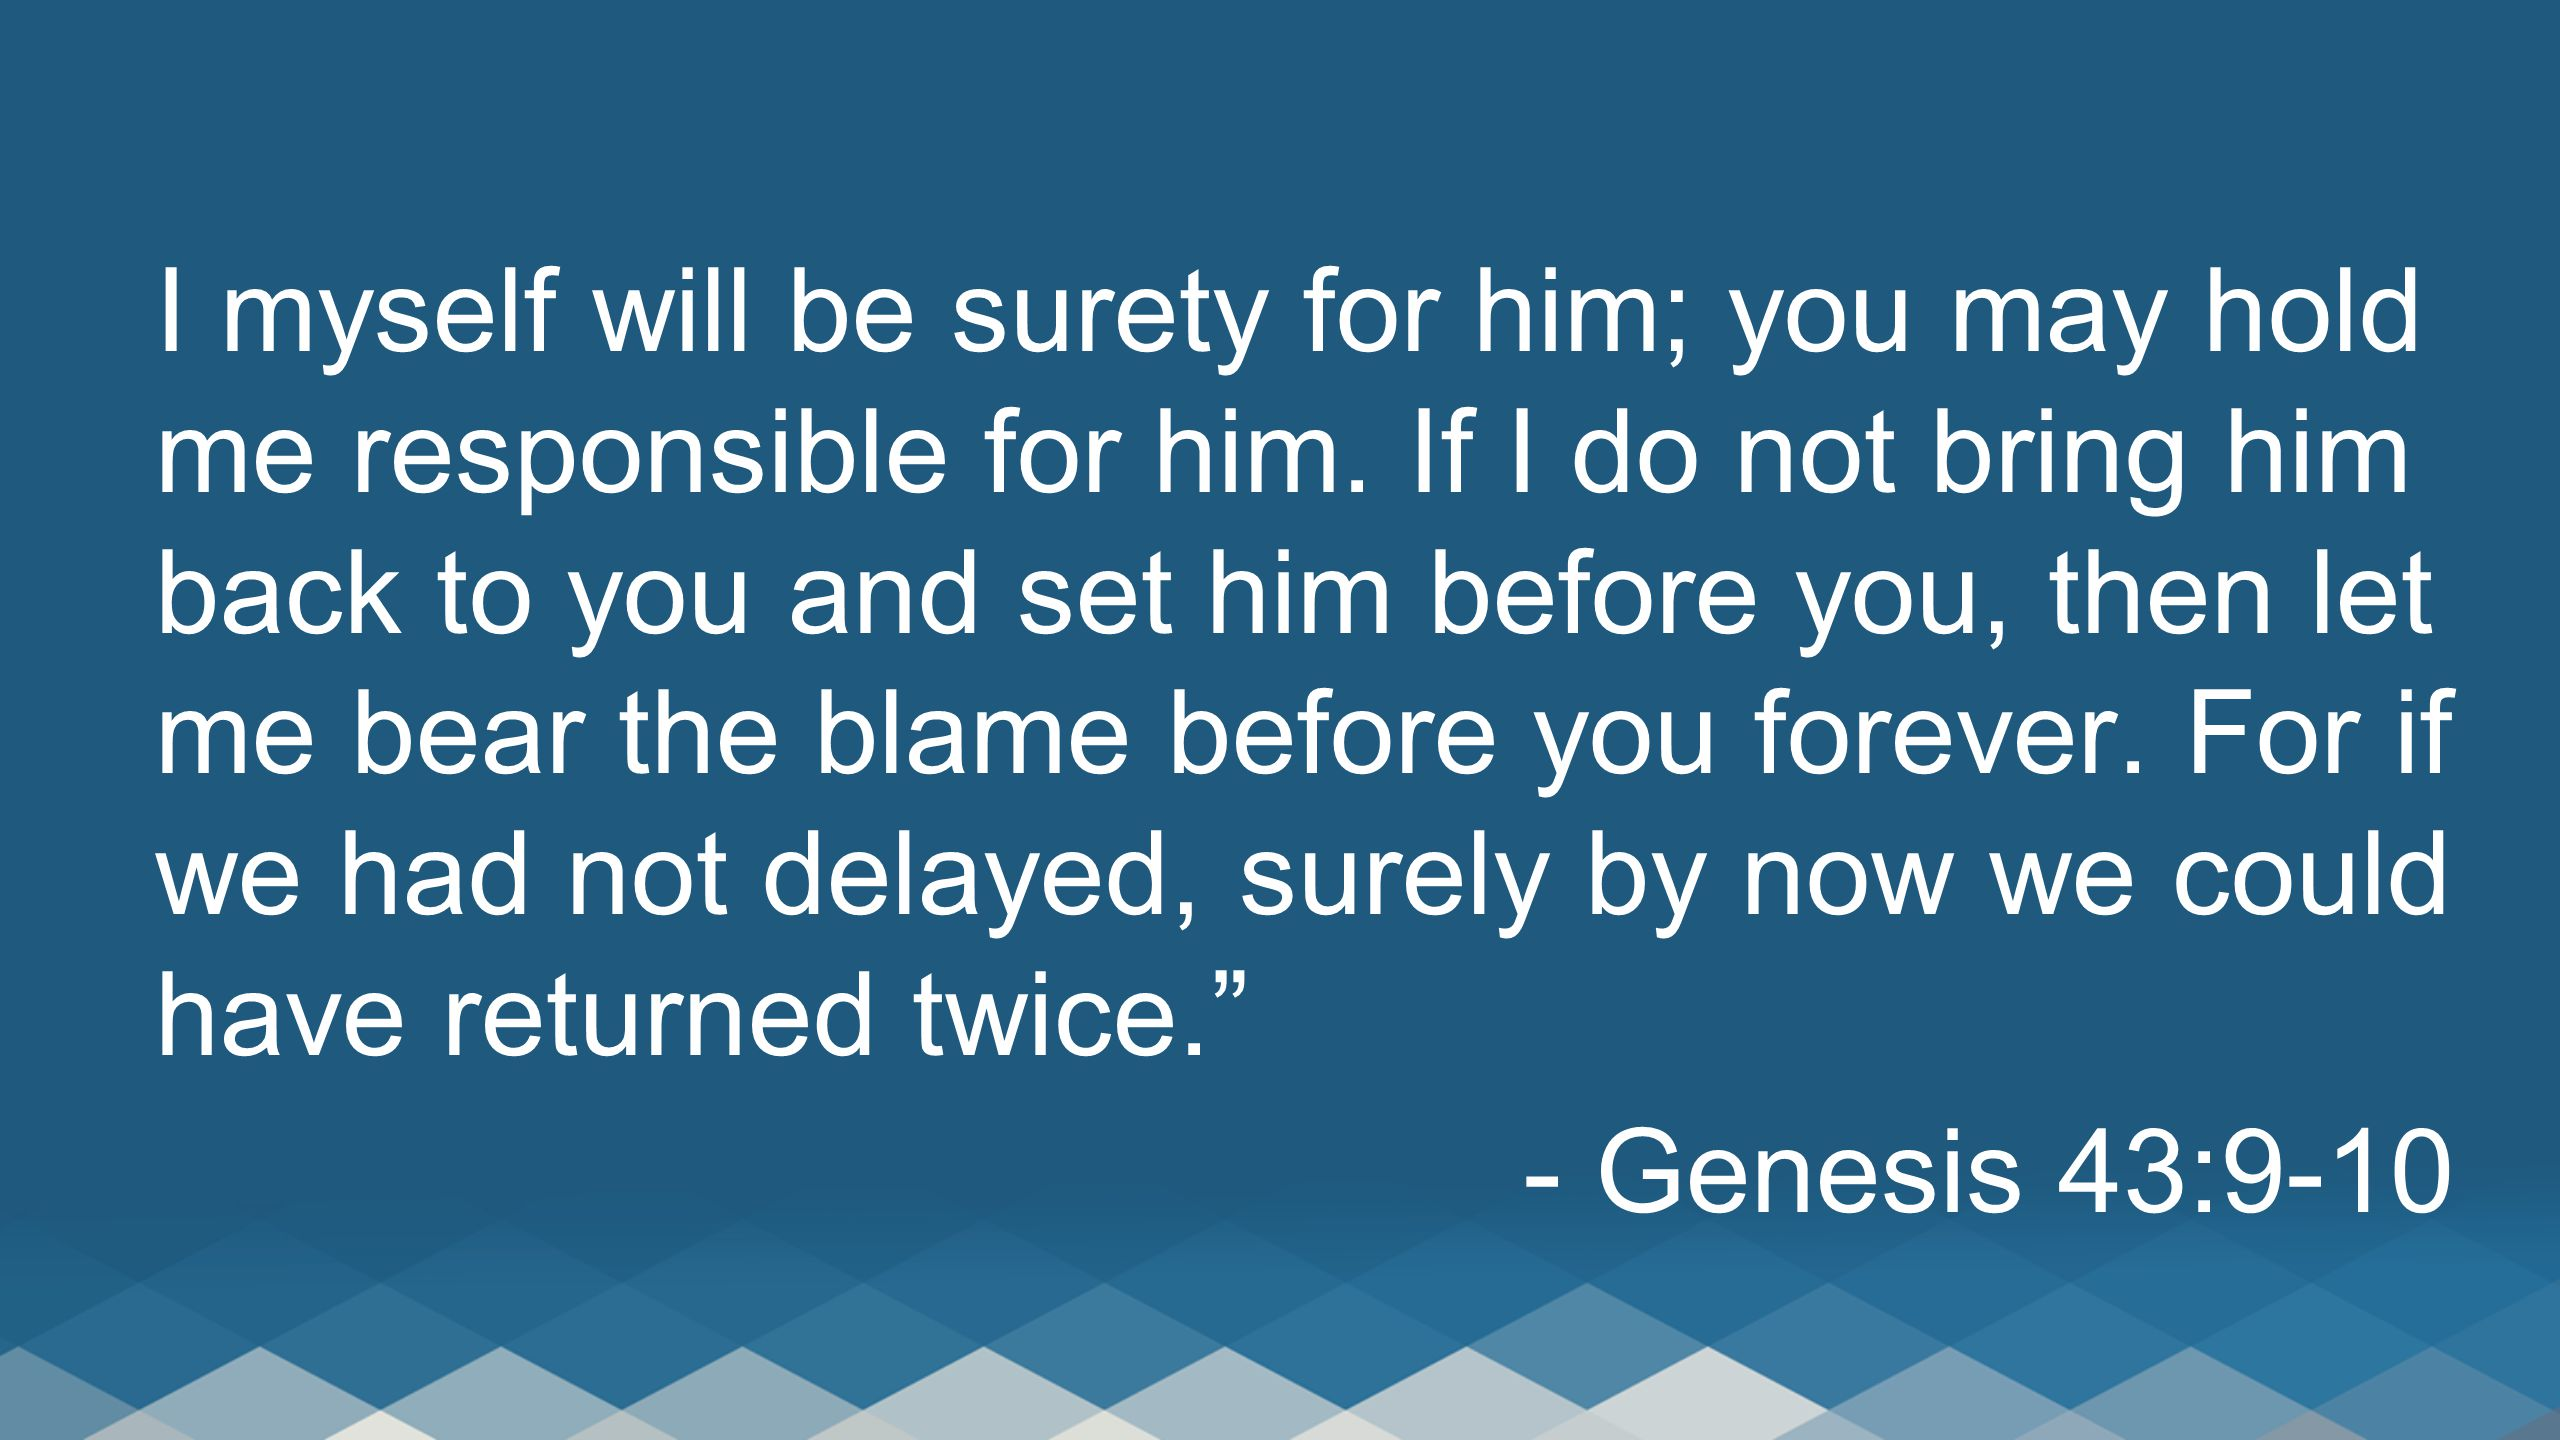 I myself will be surety for him; you may hold me responsible for him. If I do not bring him back to you and set him before you, then let me bear the b